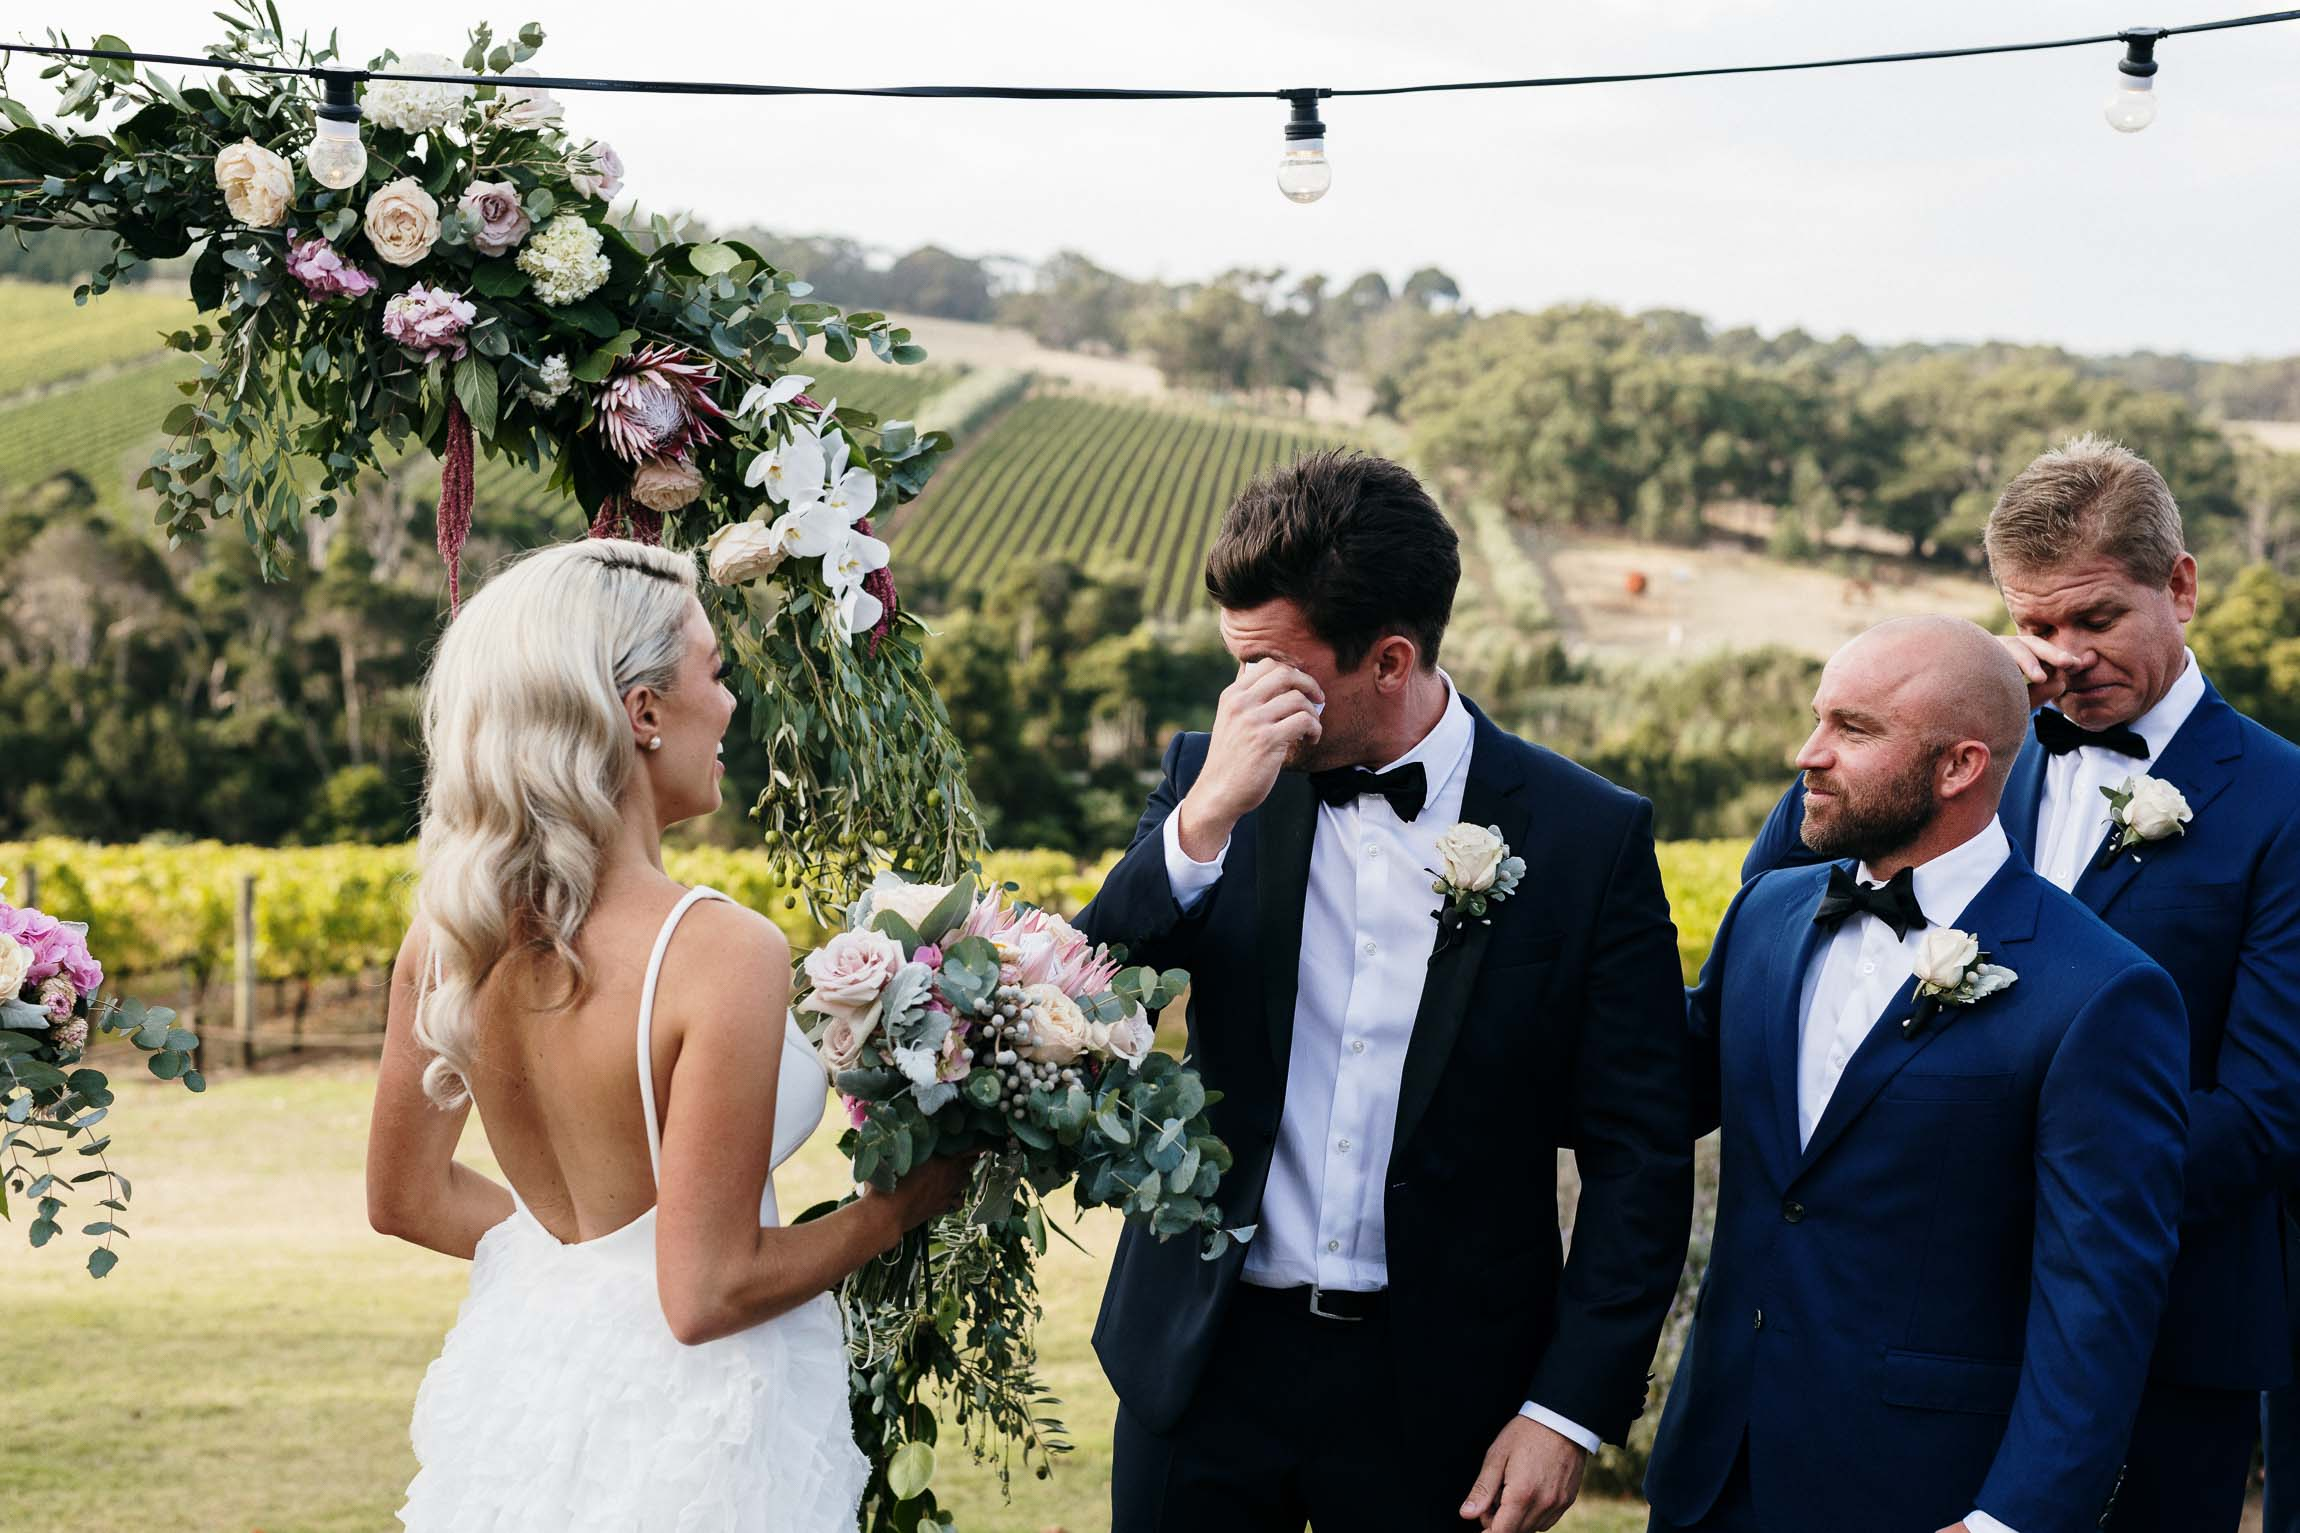 lachlan-scallion-melbourne-victoria-austrlia-mornington-peninsula-candid-relaxed-natural-chilled-wedding-photographyemma-will-tucks-wine-201.jpg